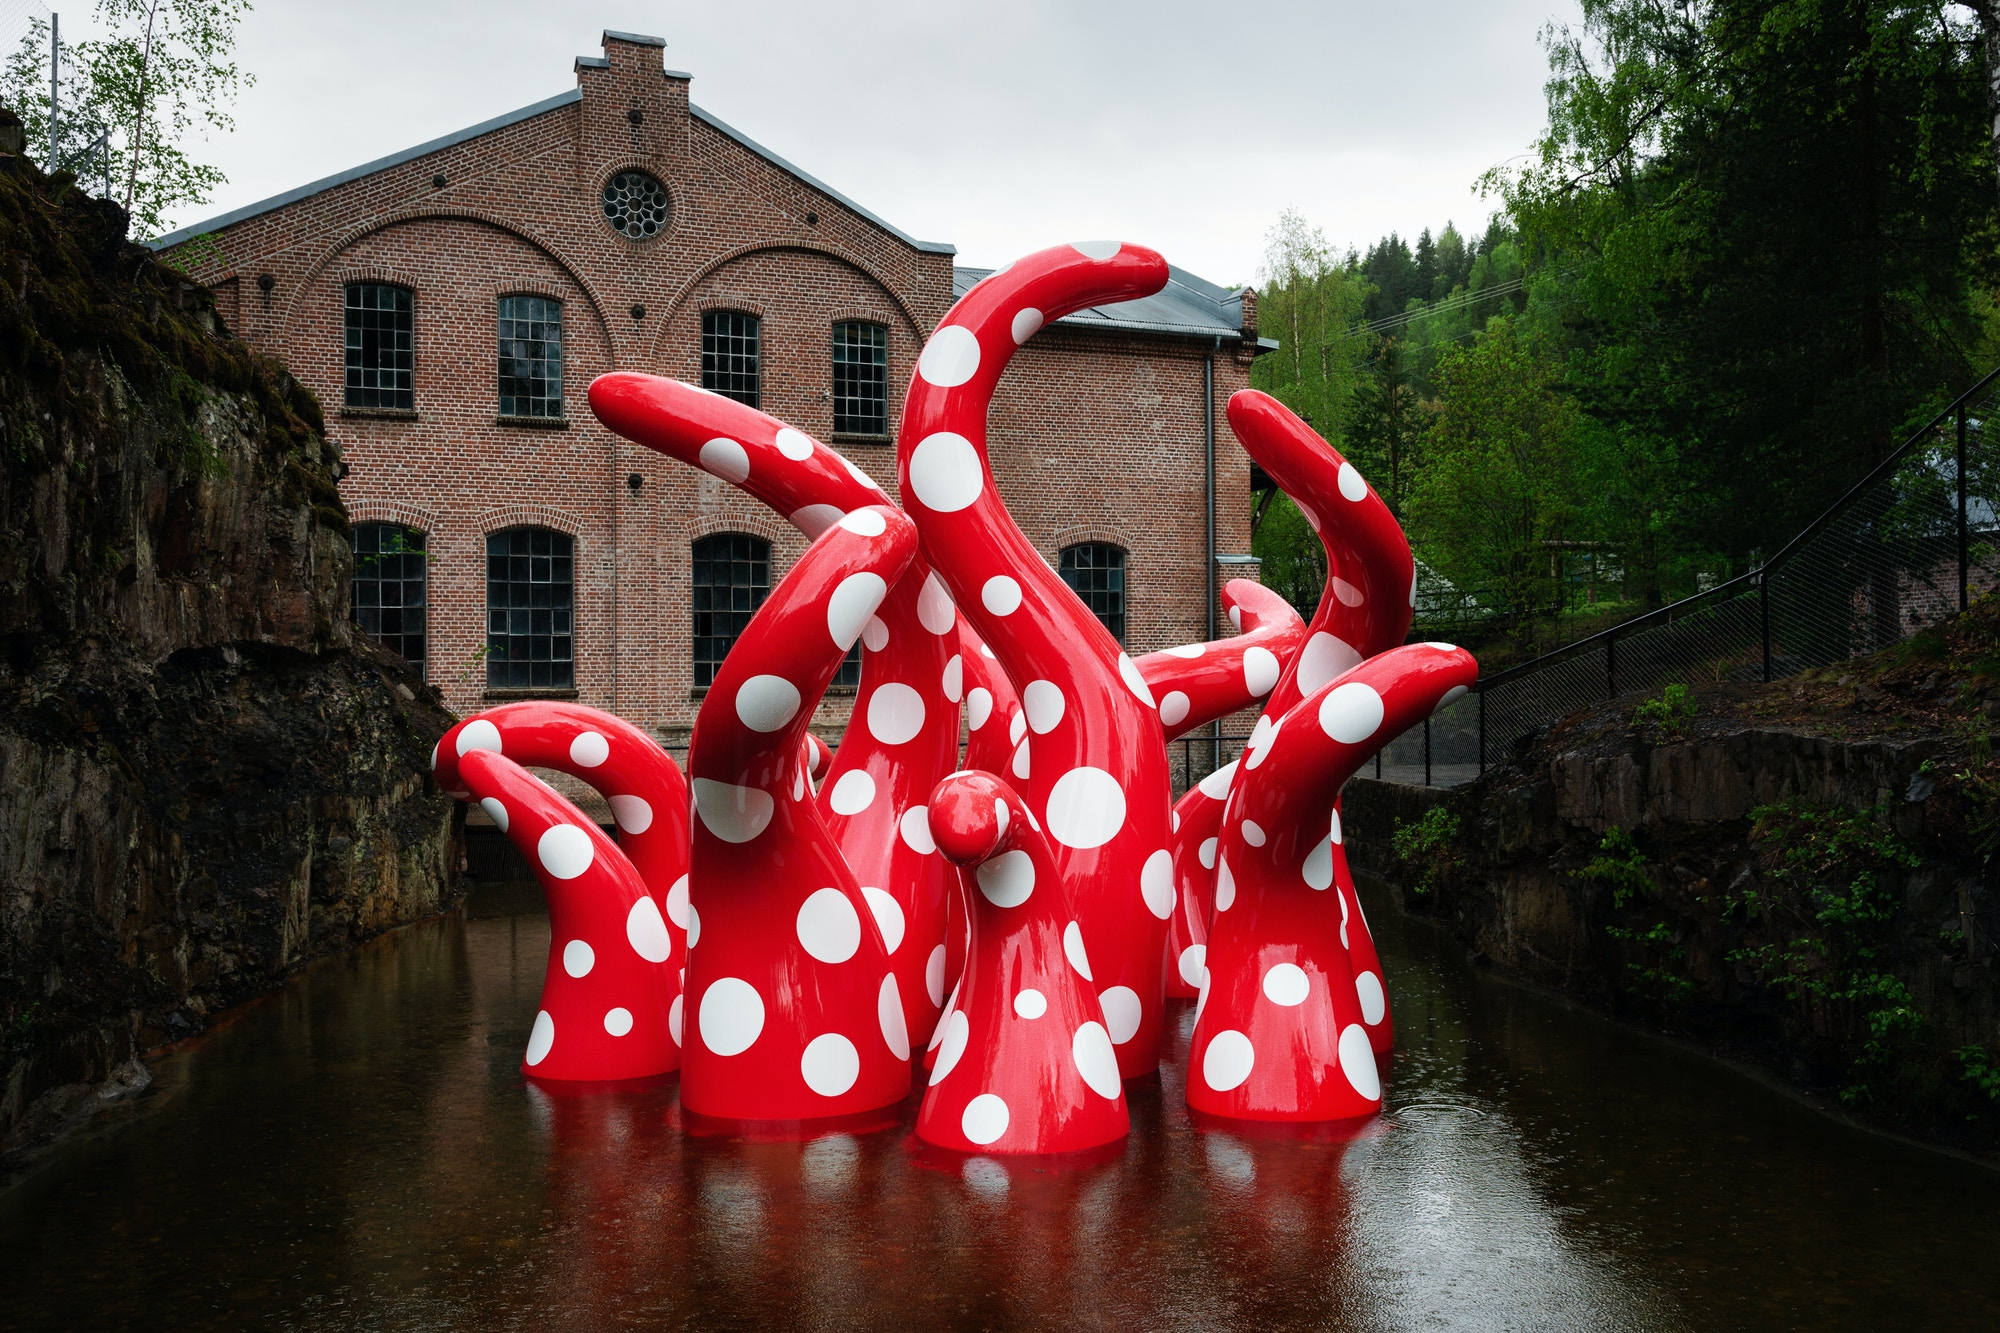 Sculpture by japaneese artist Yayoi Kusama showing octopuslike red and white dotty arms emerging up from the water.